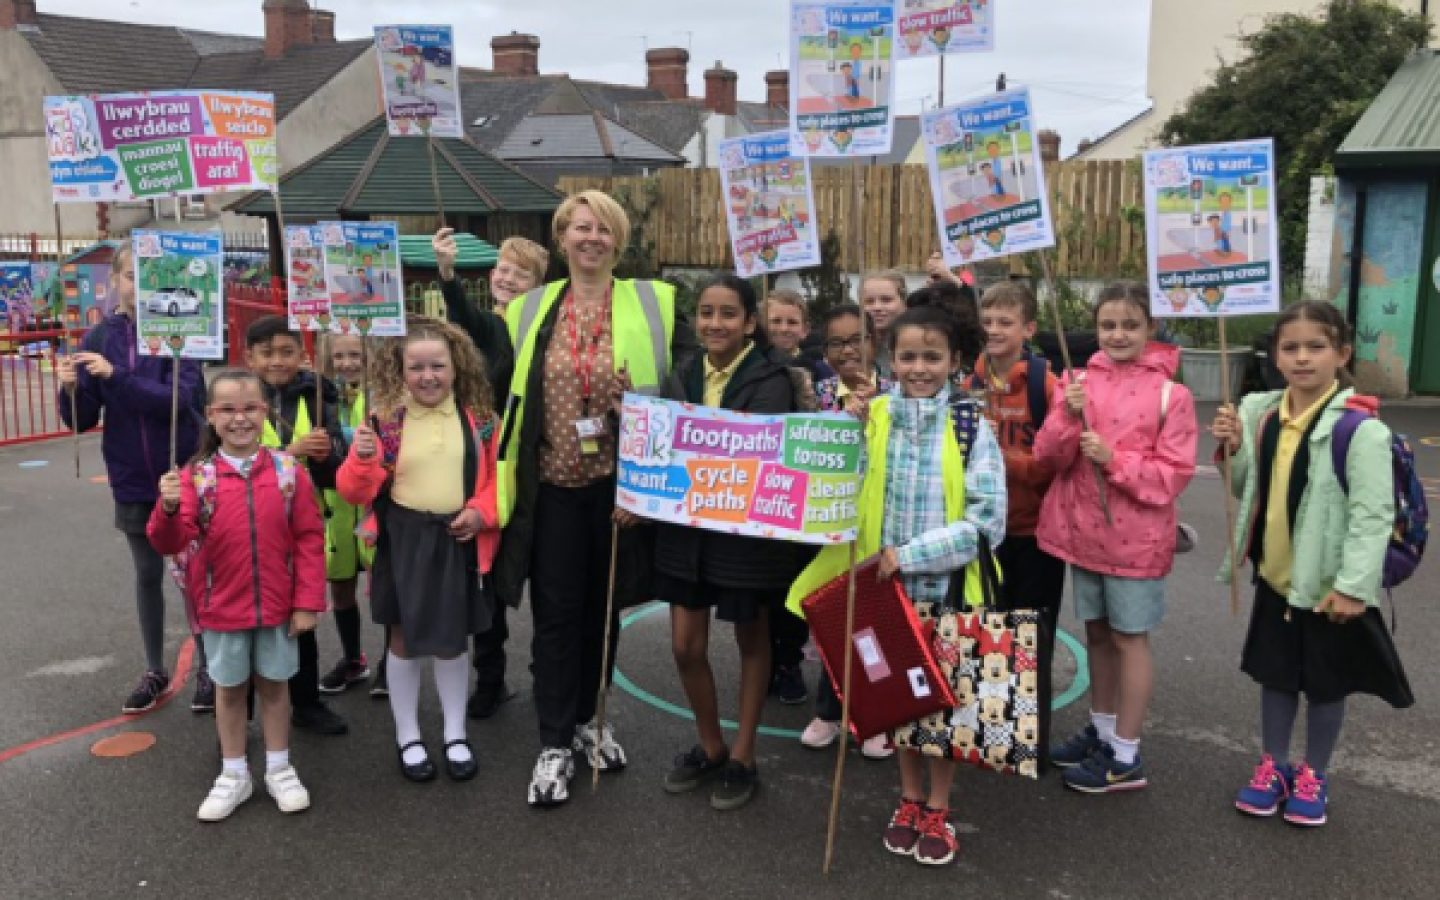 Children campaigning Brake Kids Walk 3